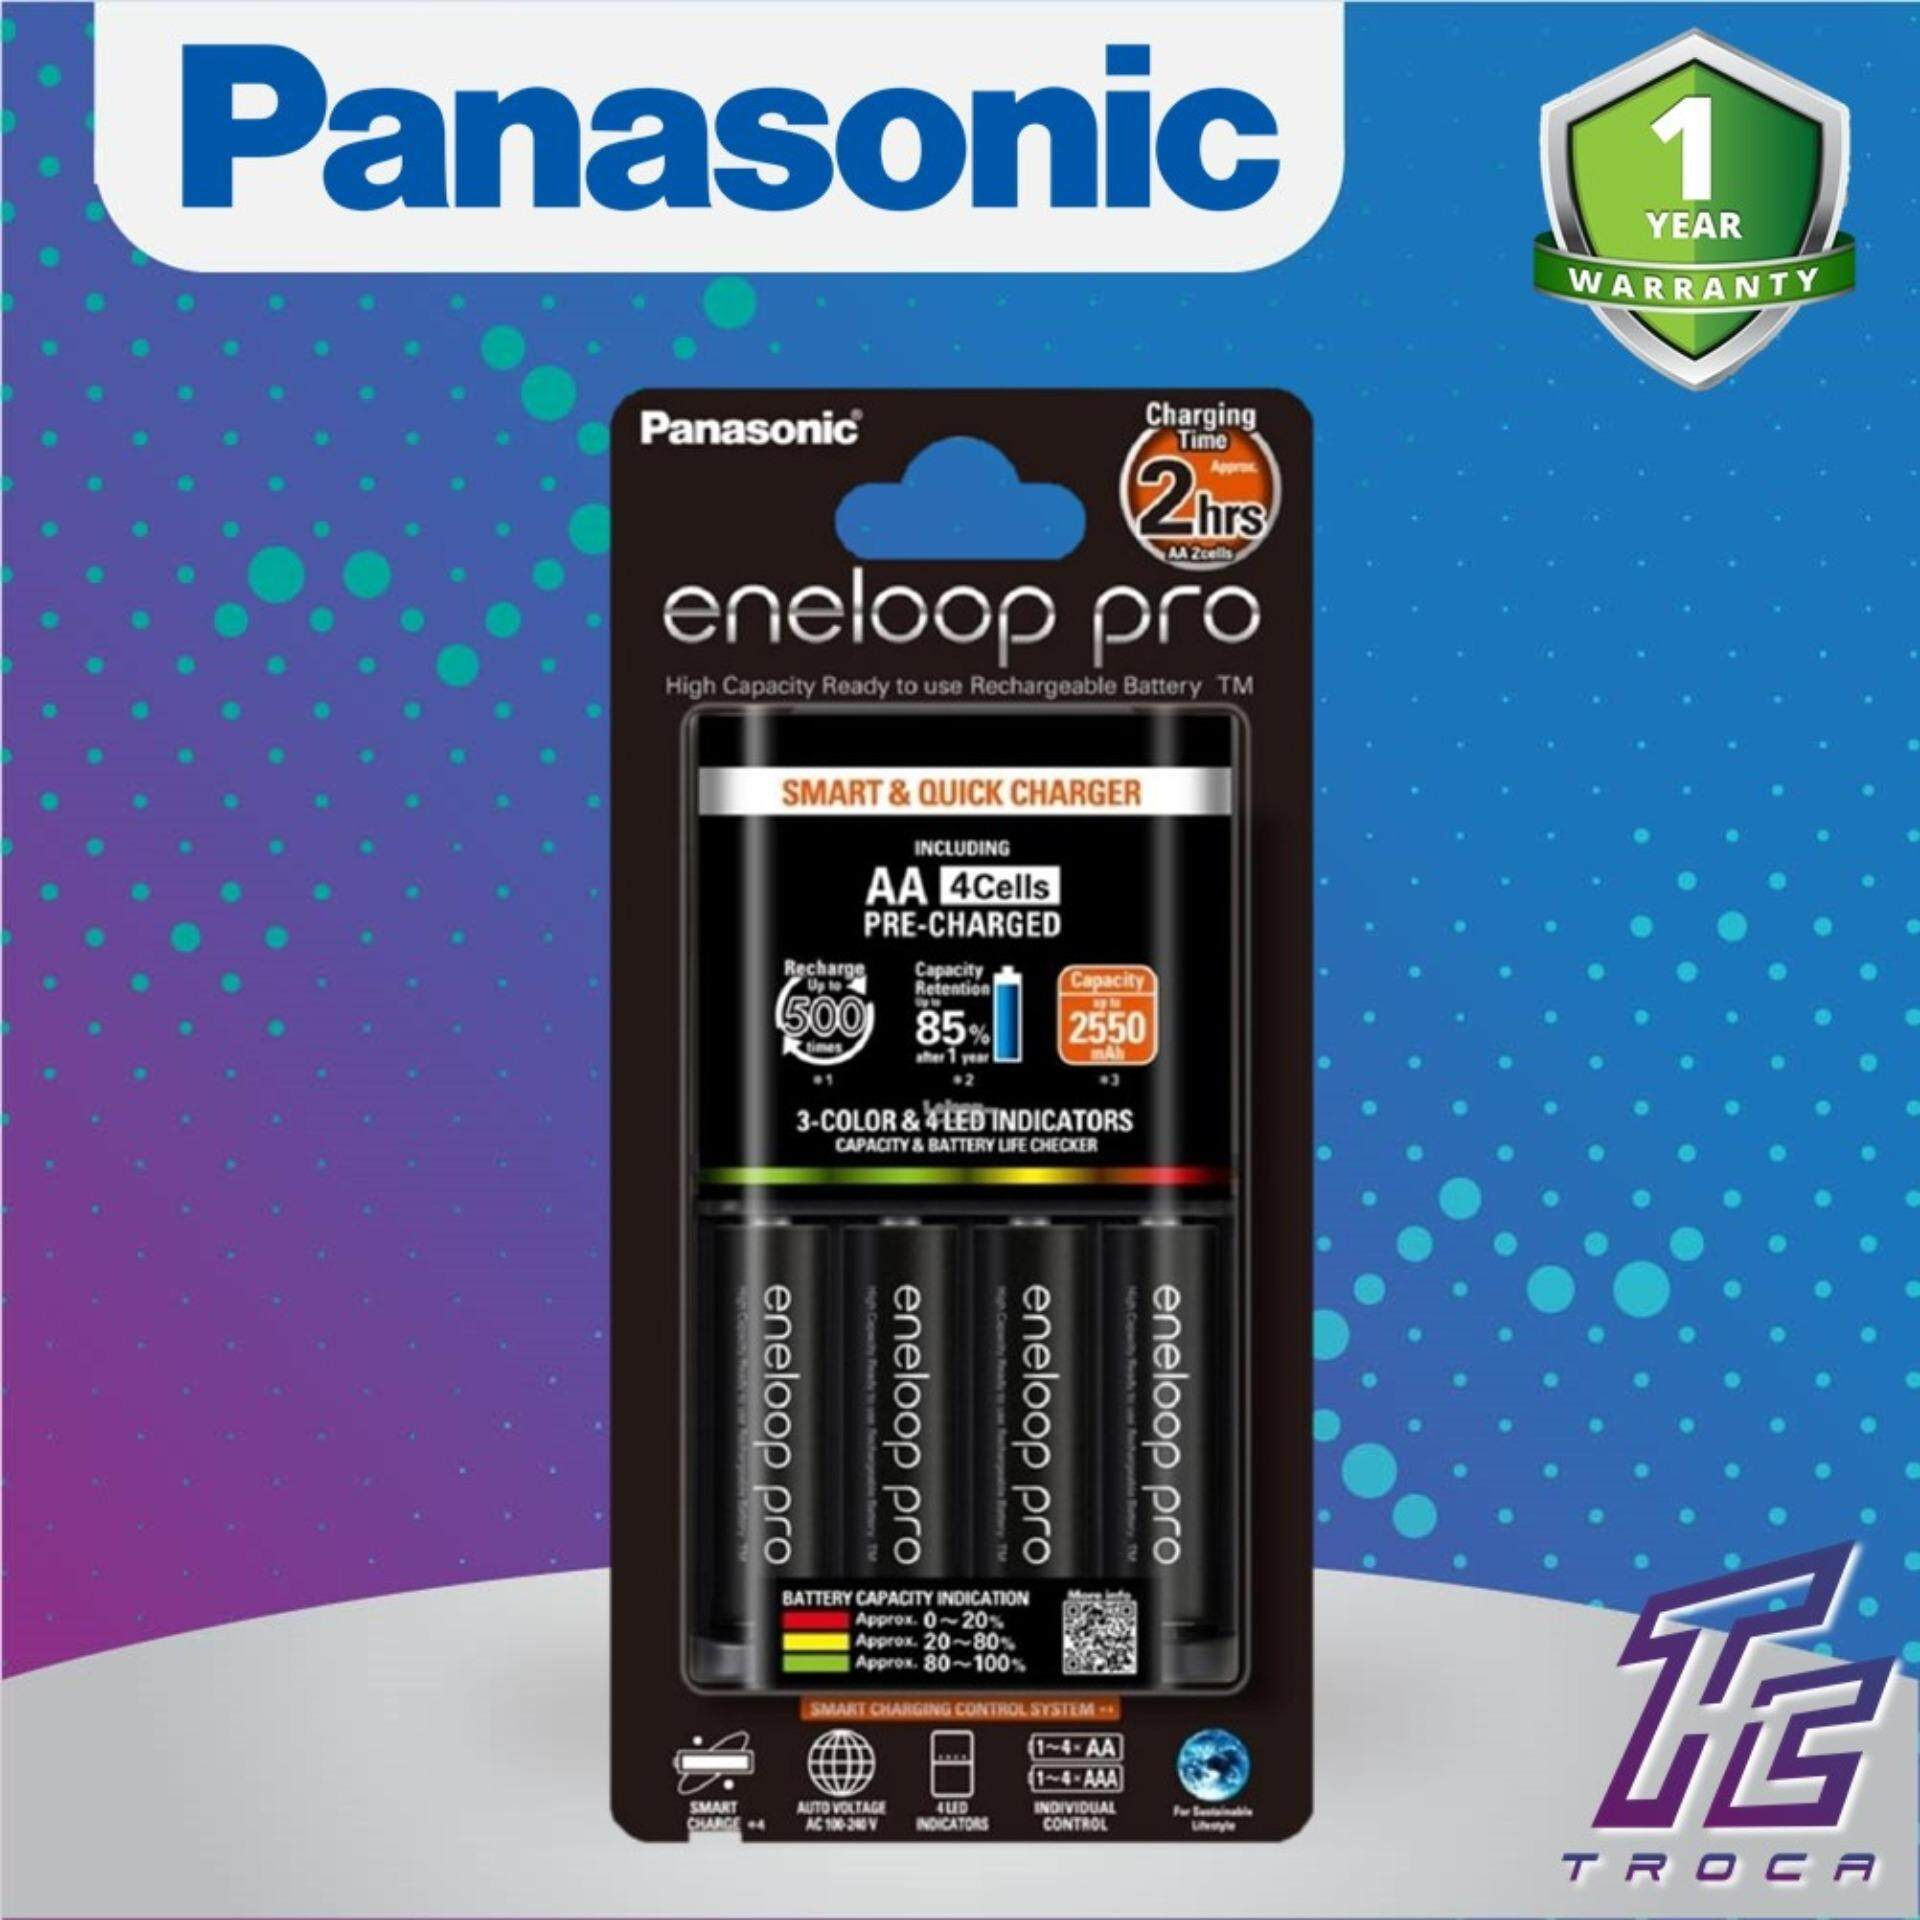 Panasonic Eneloop Pro Quick Charger with LED Indicator with 4 x AA 2550mAh Rechargeable Battery (K-KJ55HCC40M) Malaysia